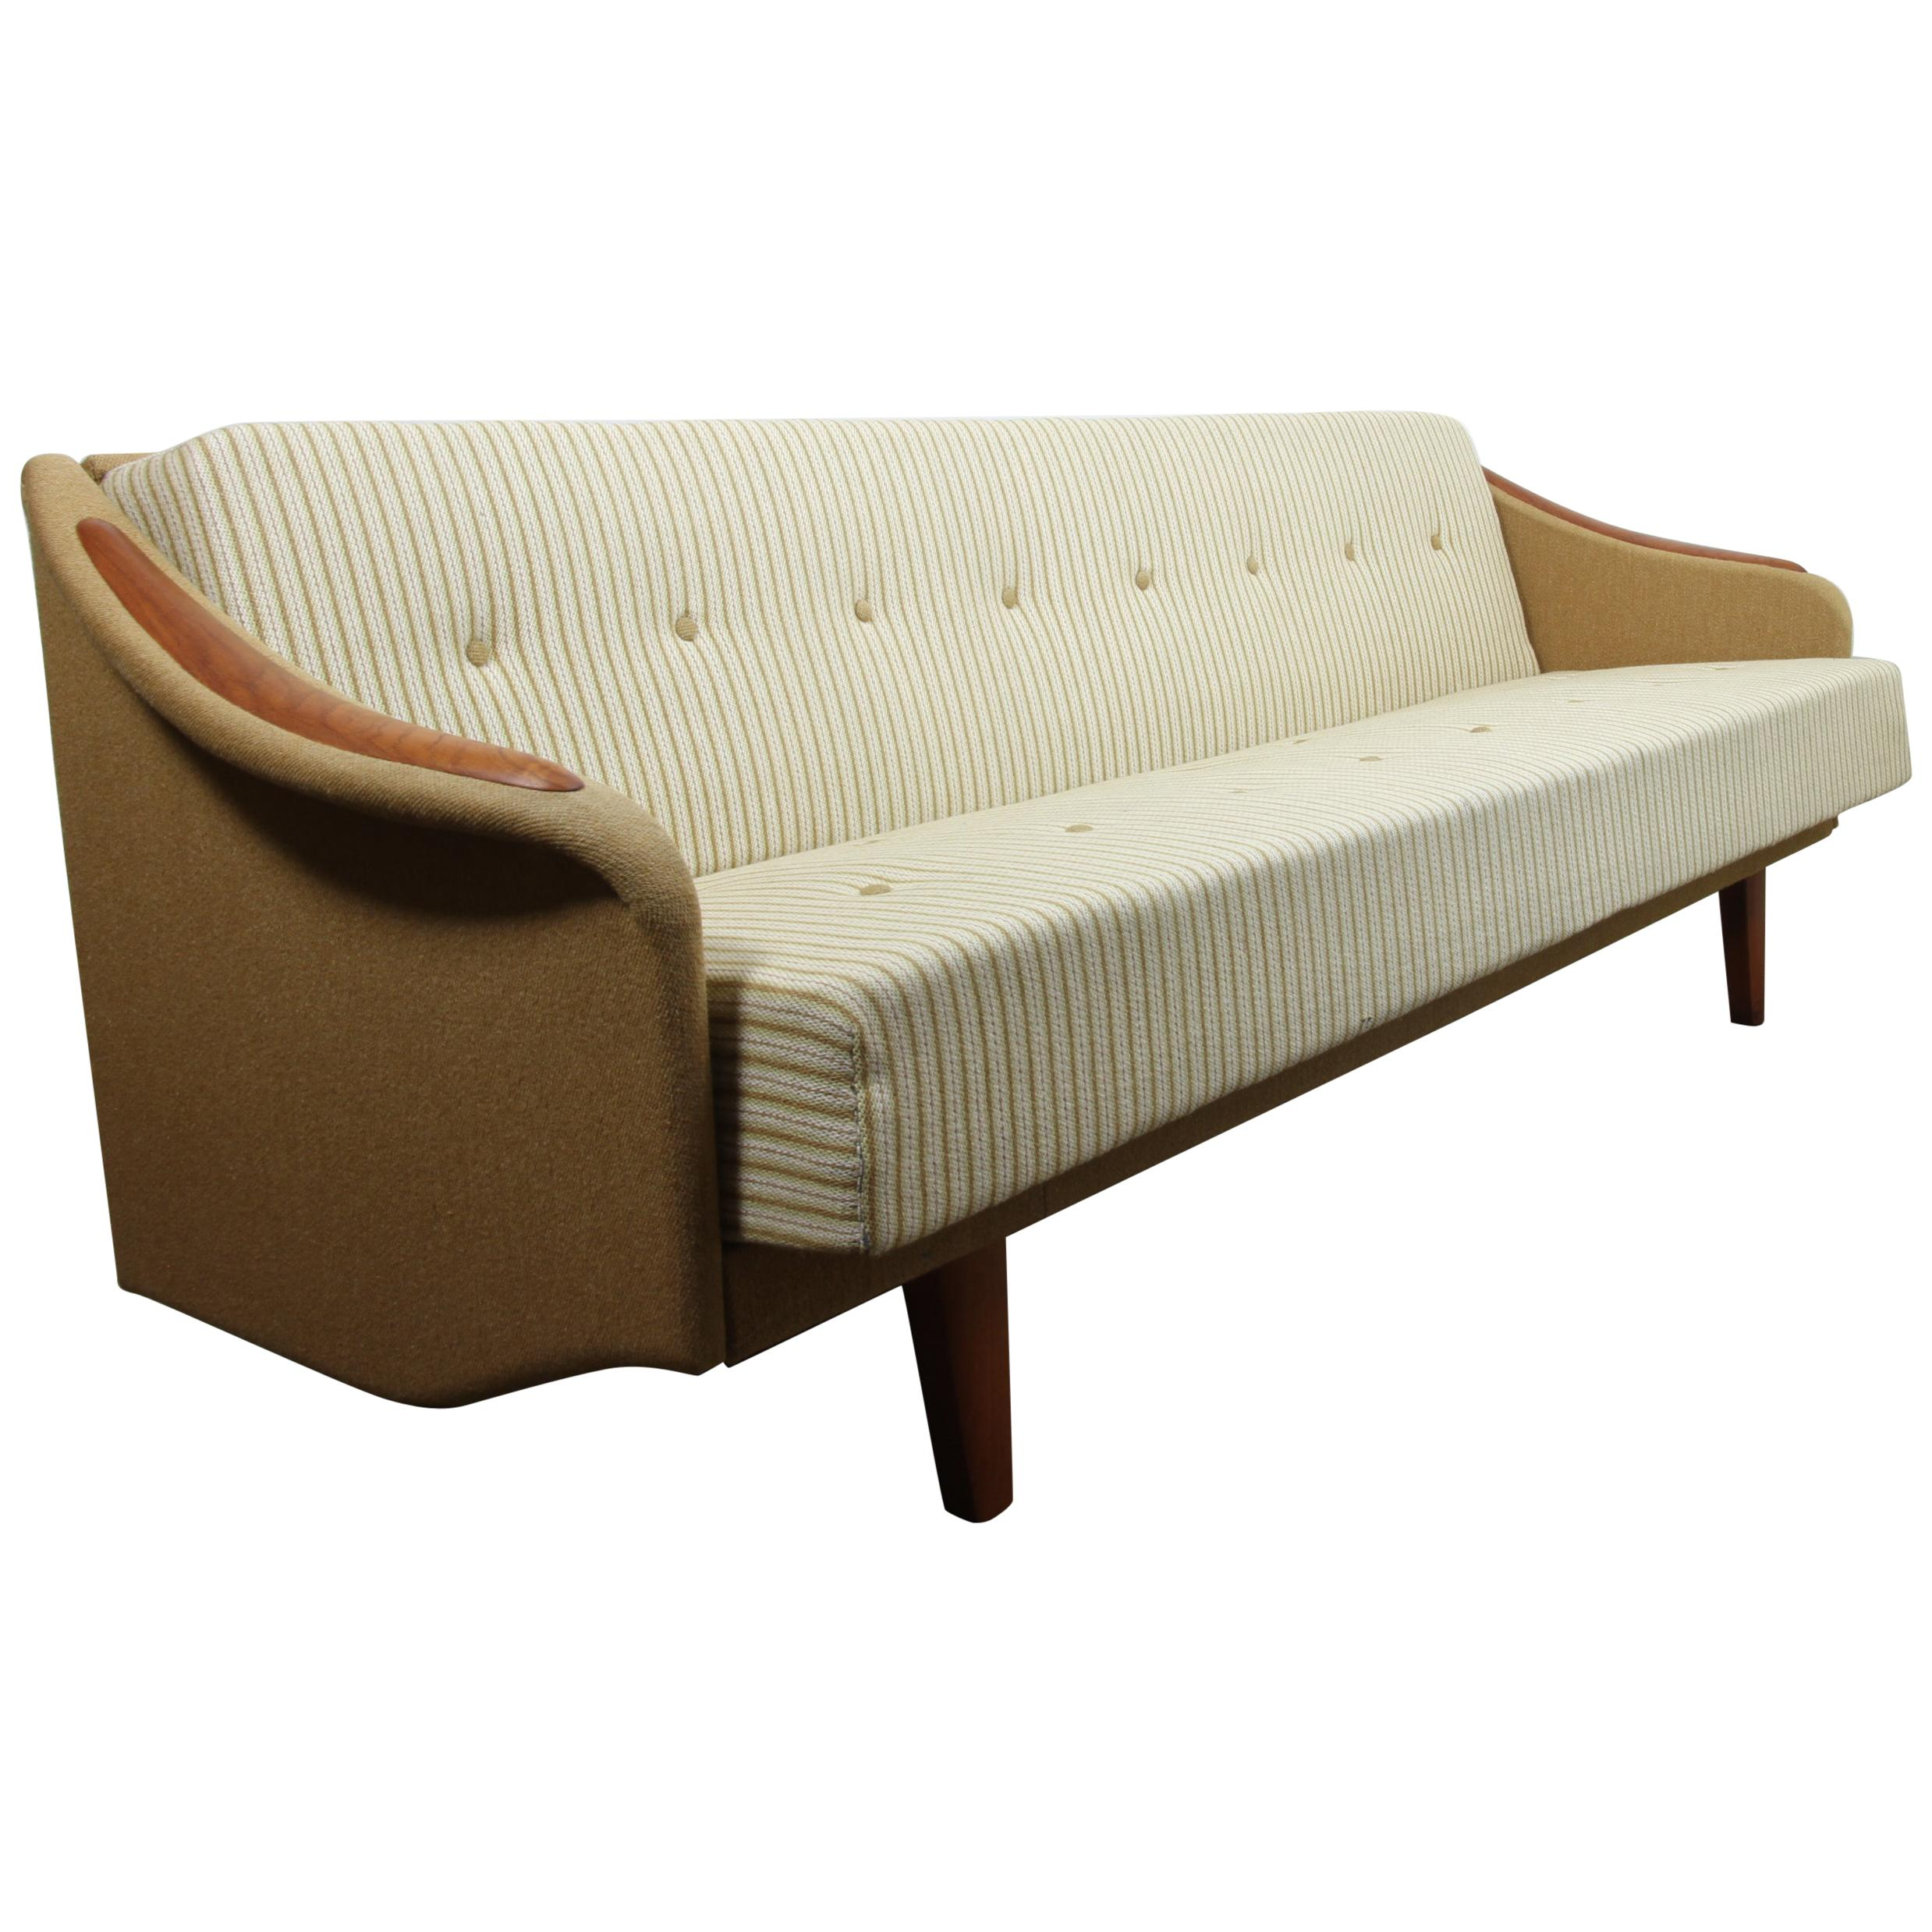 Danish Vintage Daybed Teak Sofa 1960s For Sale At 1stdibs